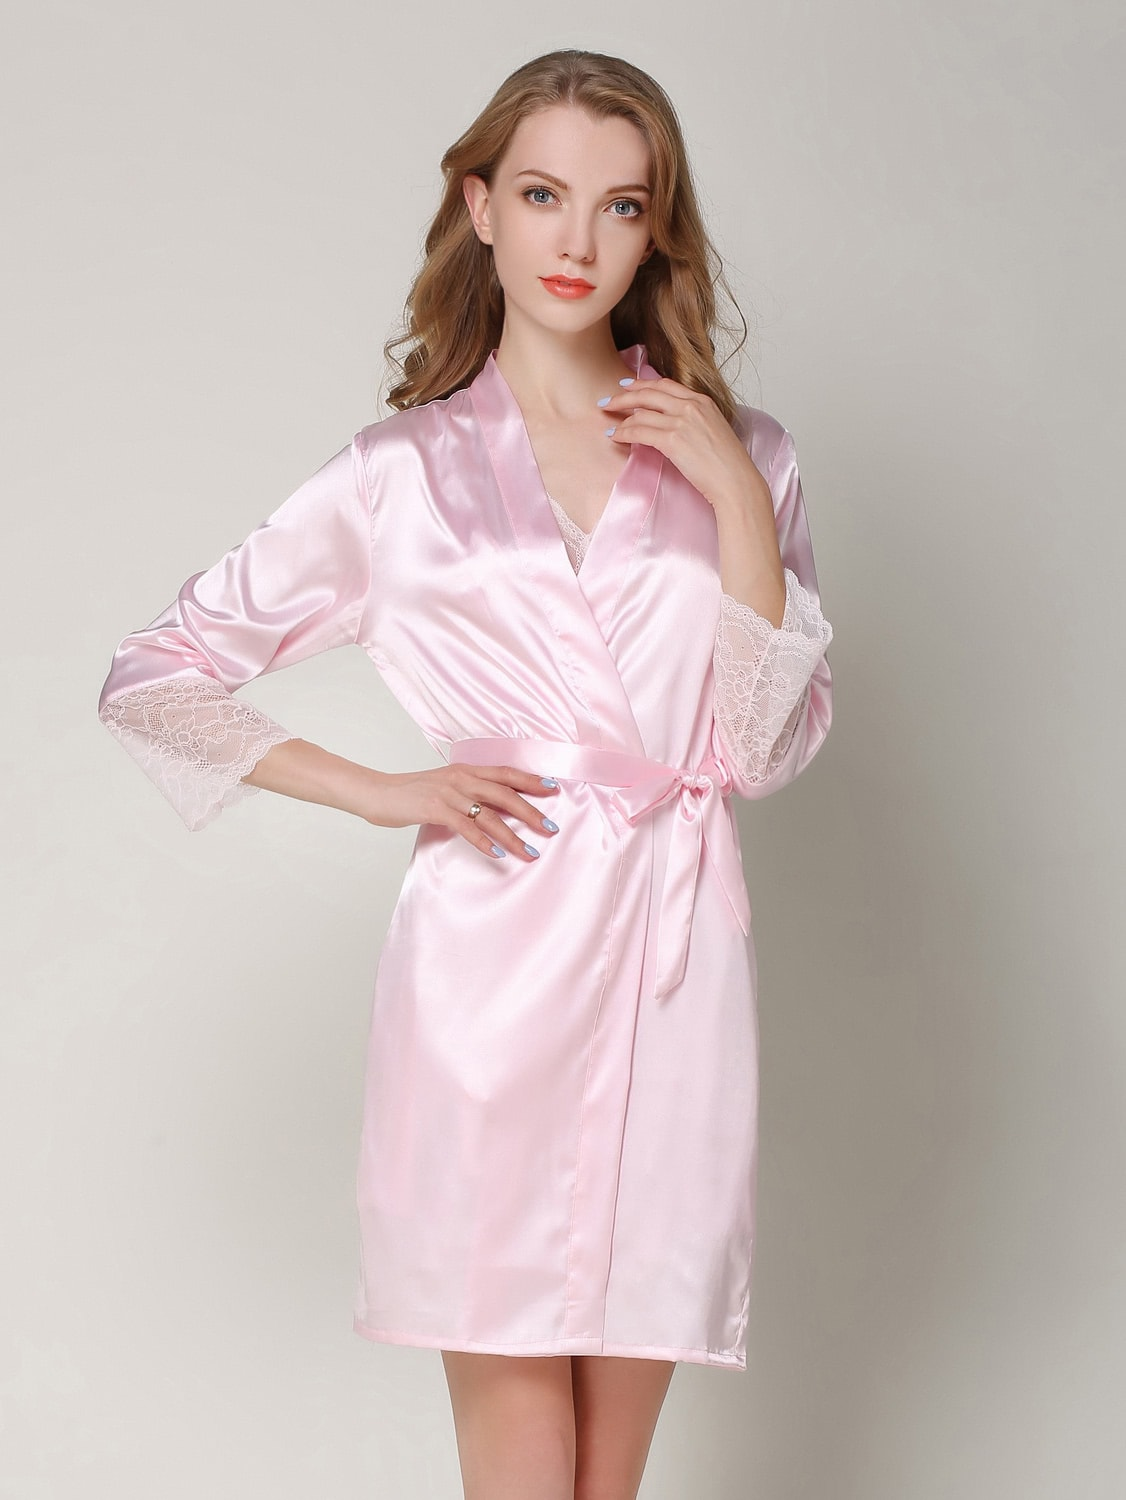 Lace Cuff Self Tie Satin Robe self tie satin robe with panty